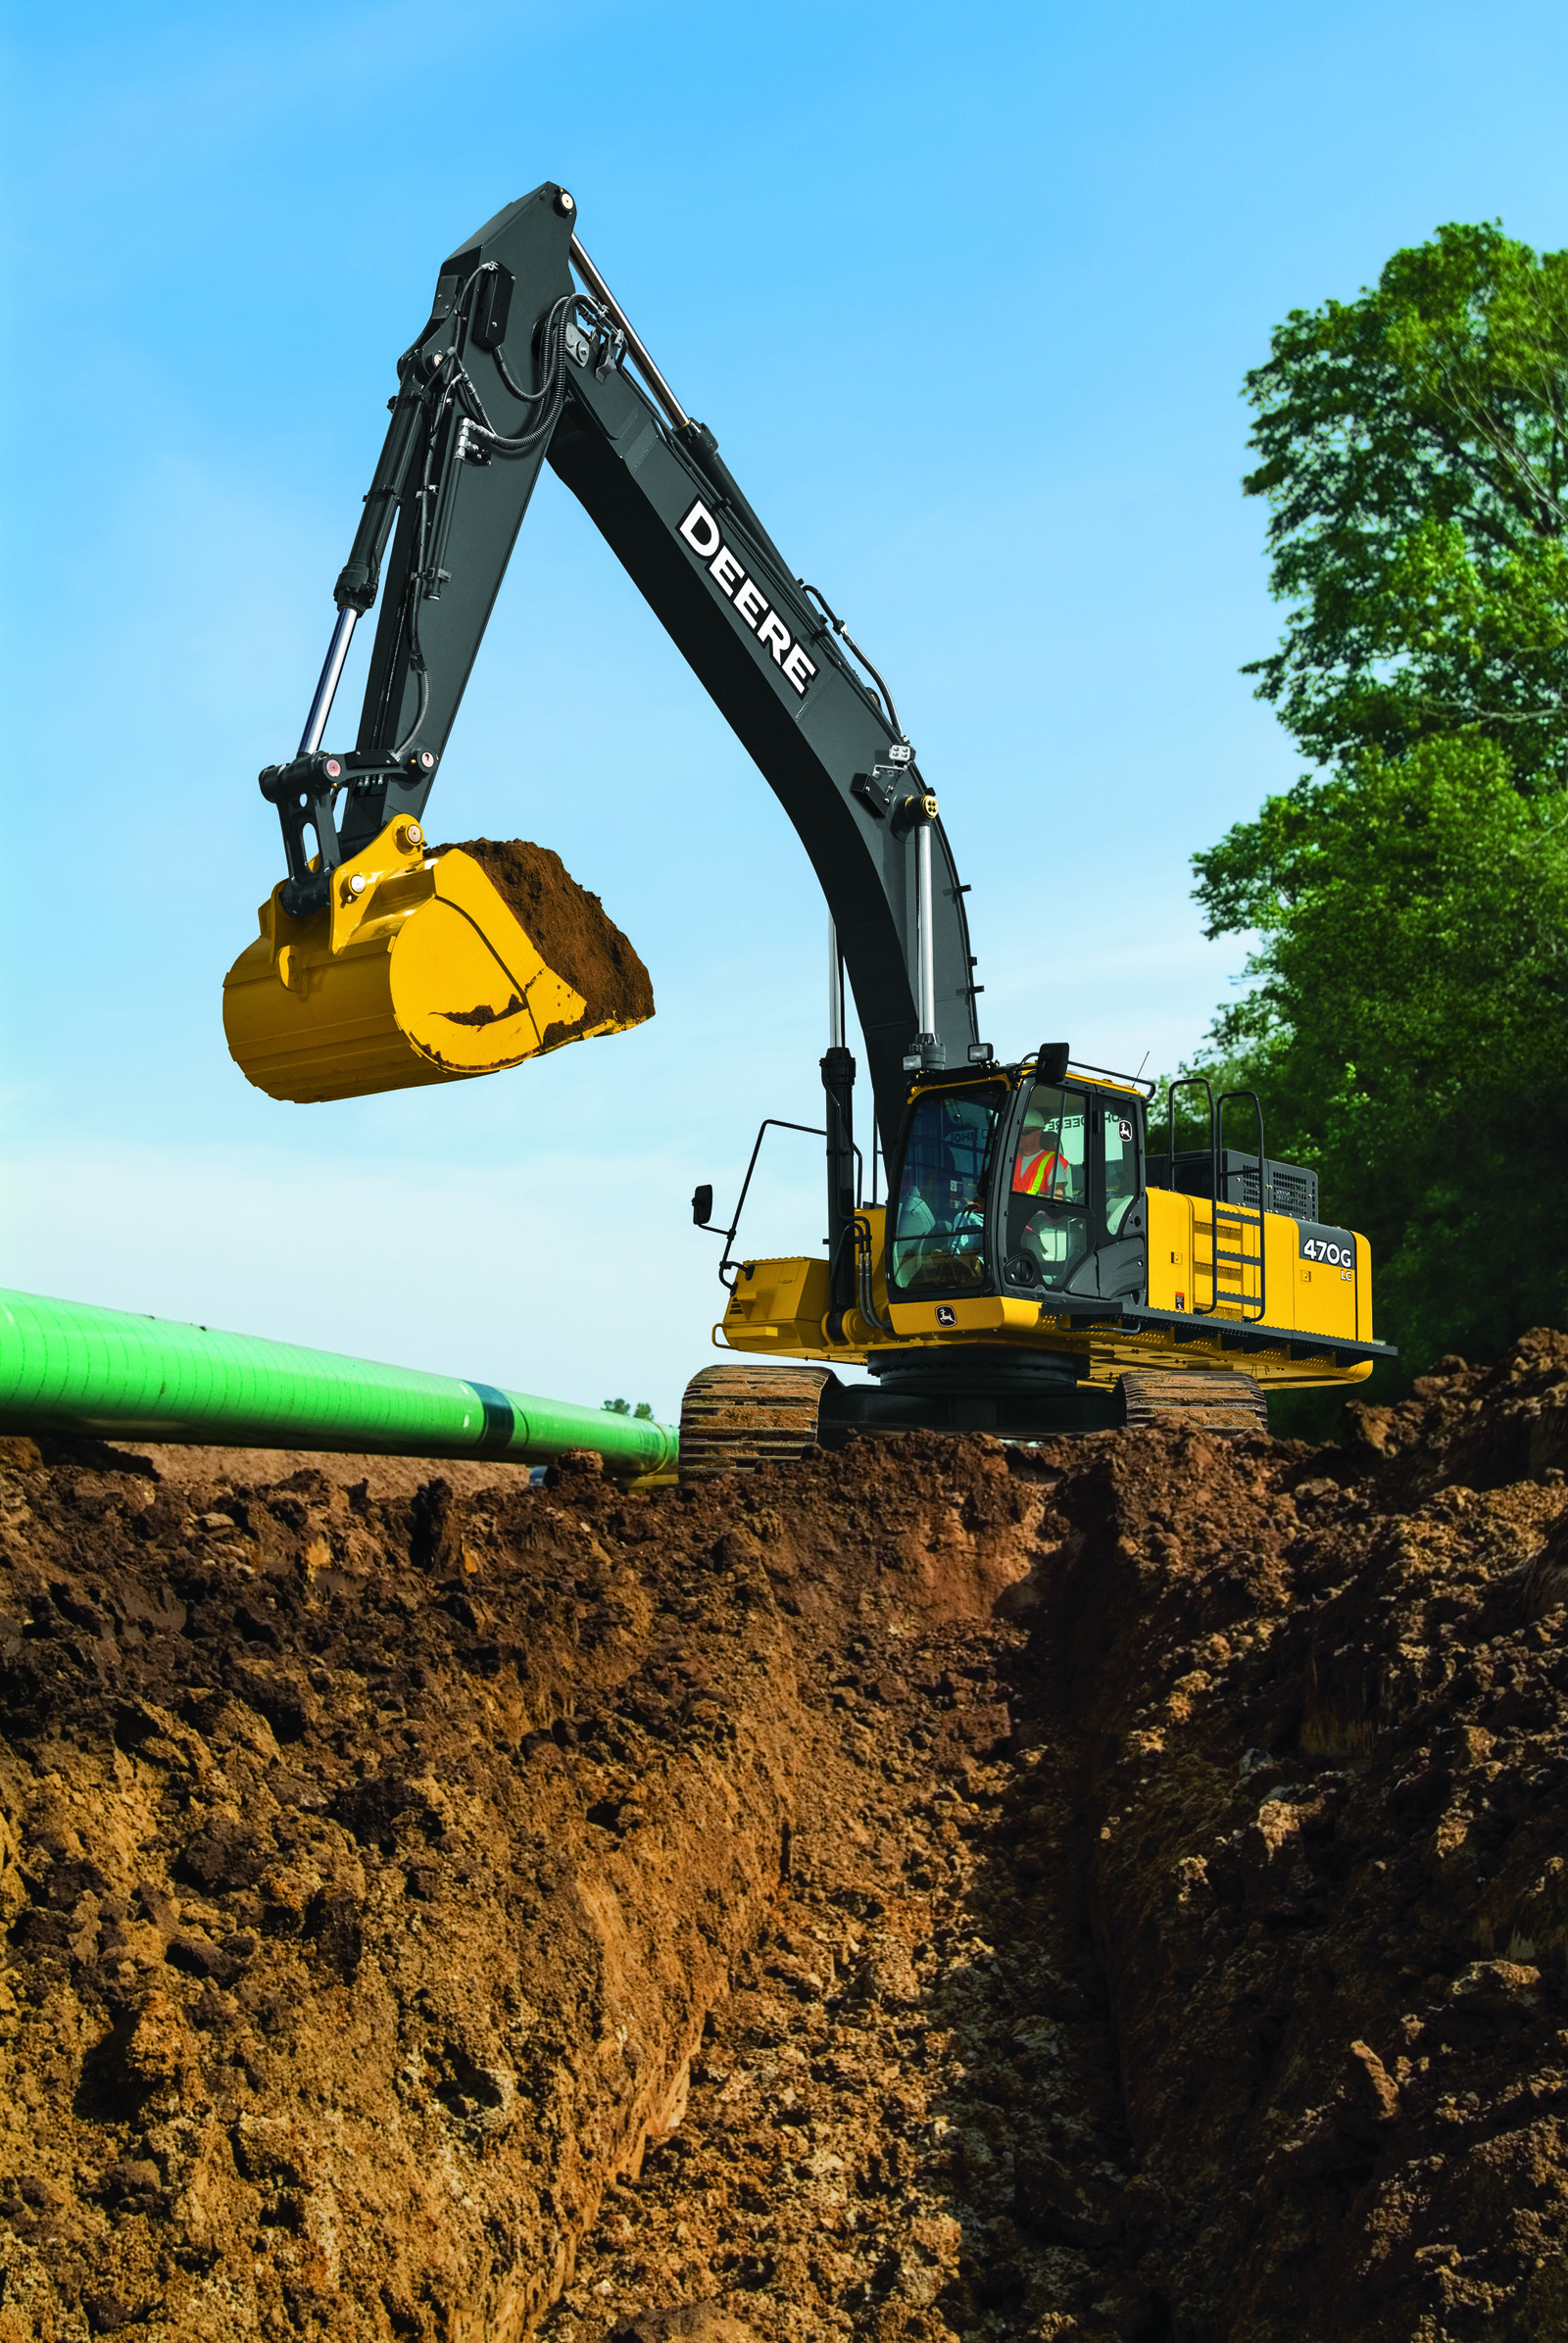 John Deere 470G LC Excavator Now Features Grade Guidance Technology